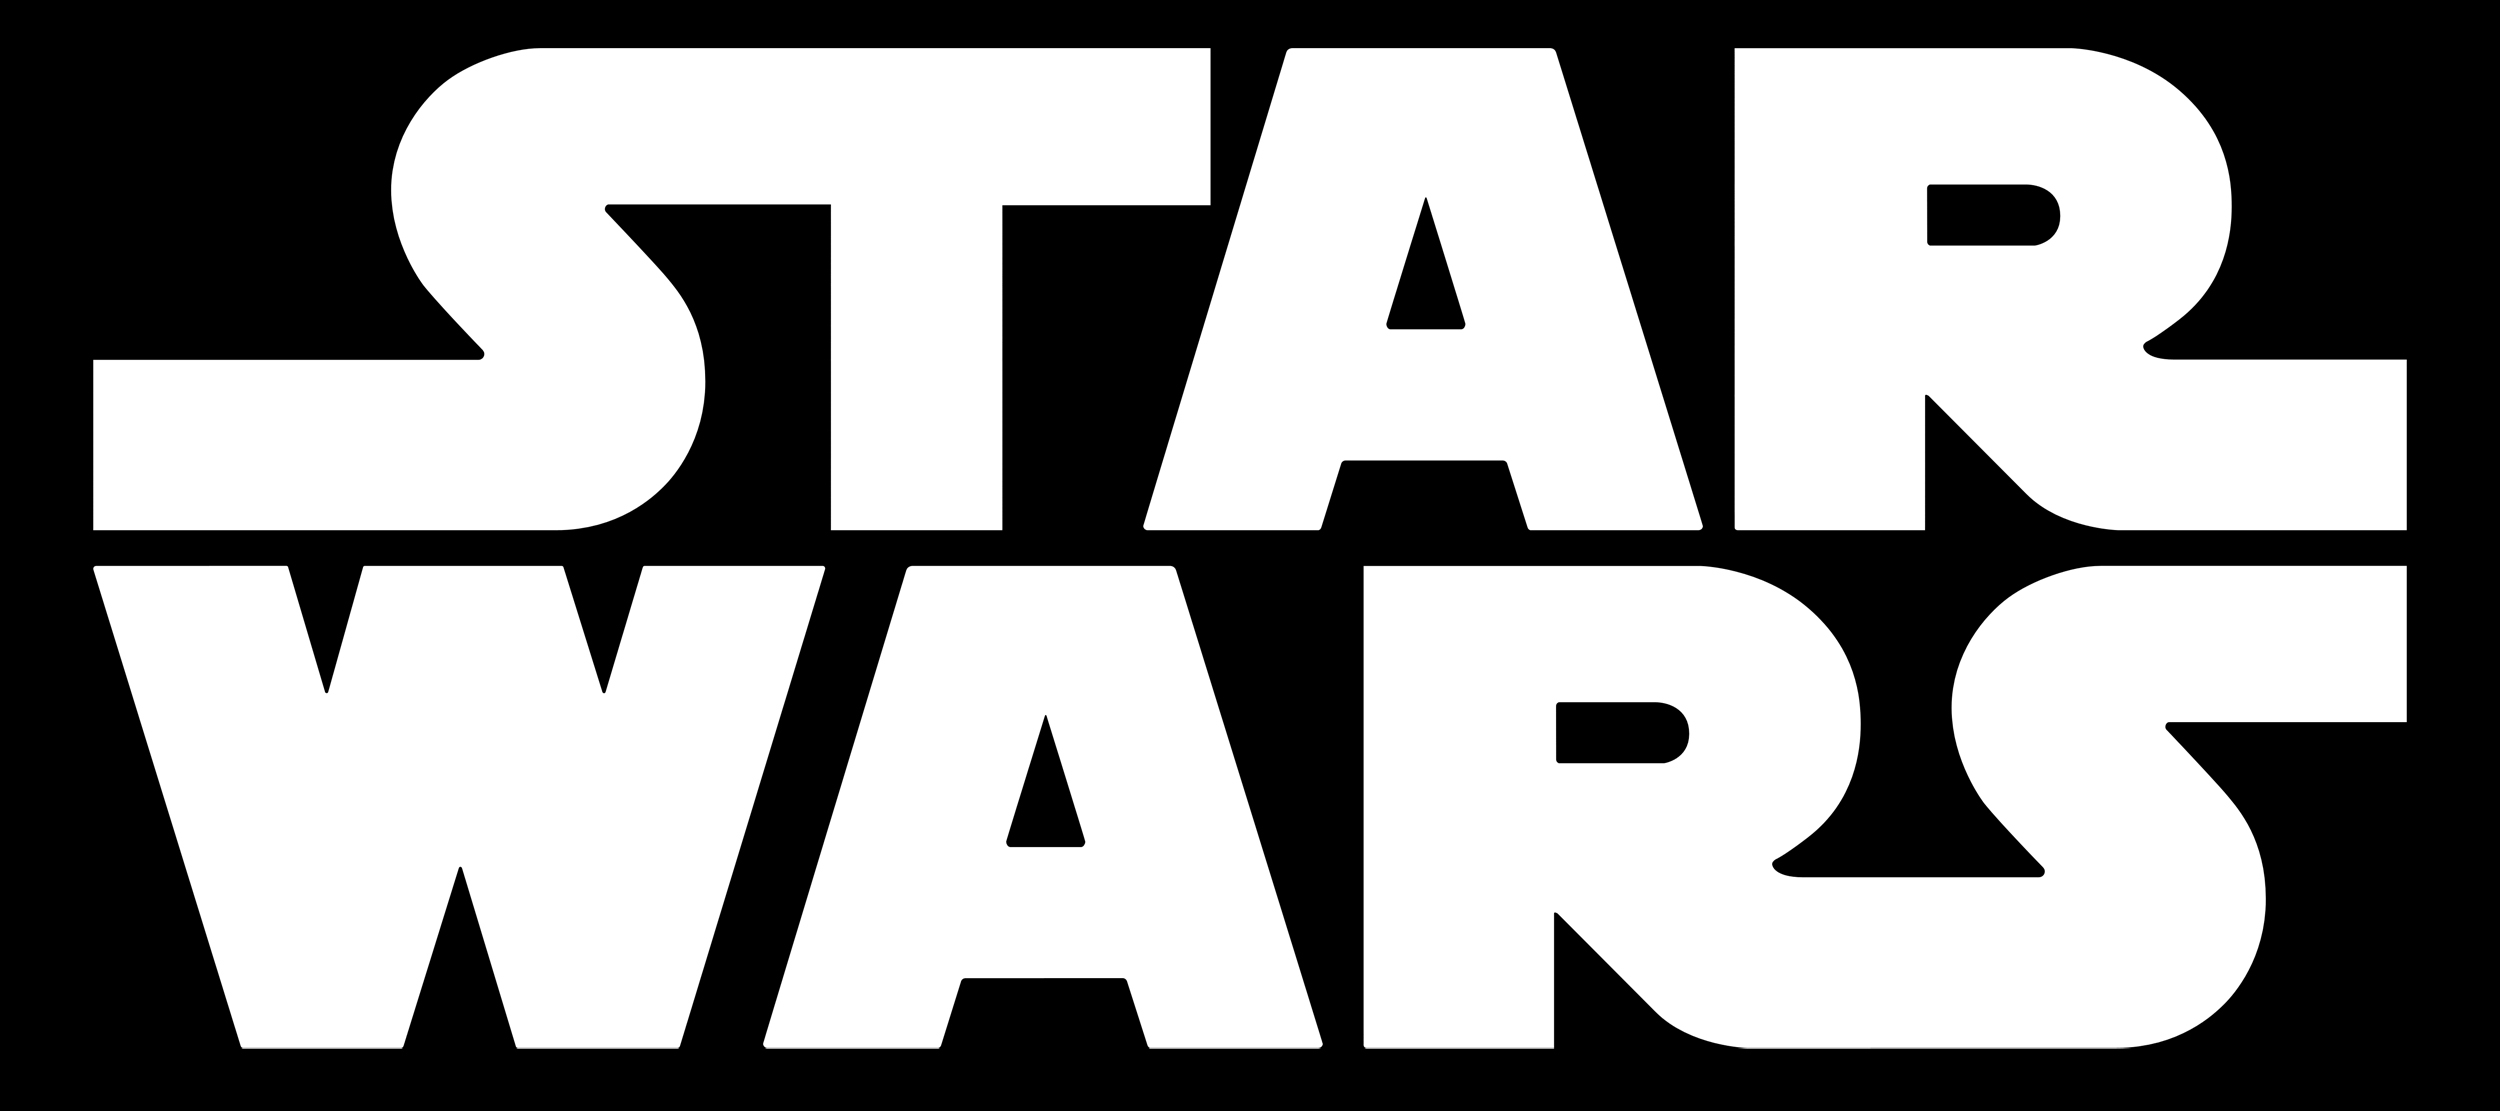 Star wars logo star wars symbol meaning history and evolution star wars symbol biocorpaavc Image collections